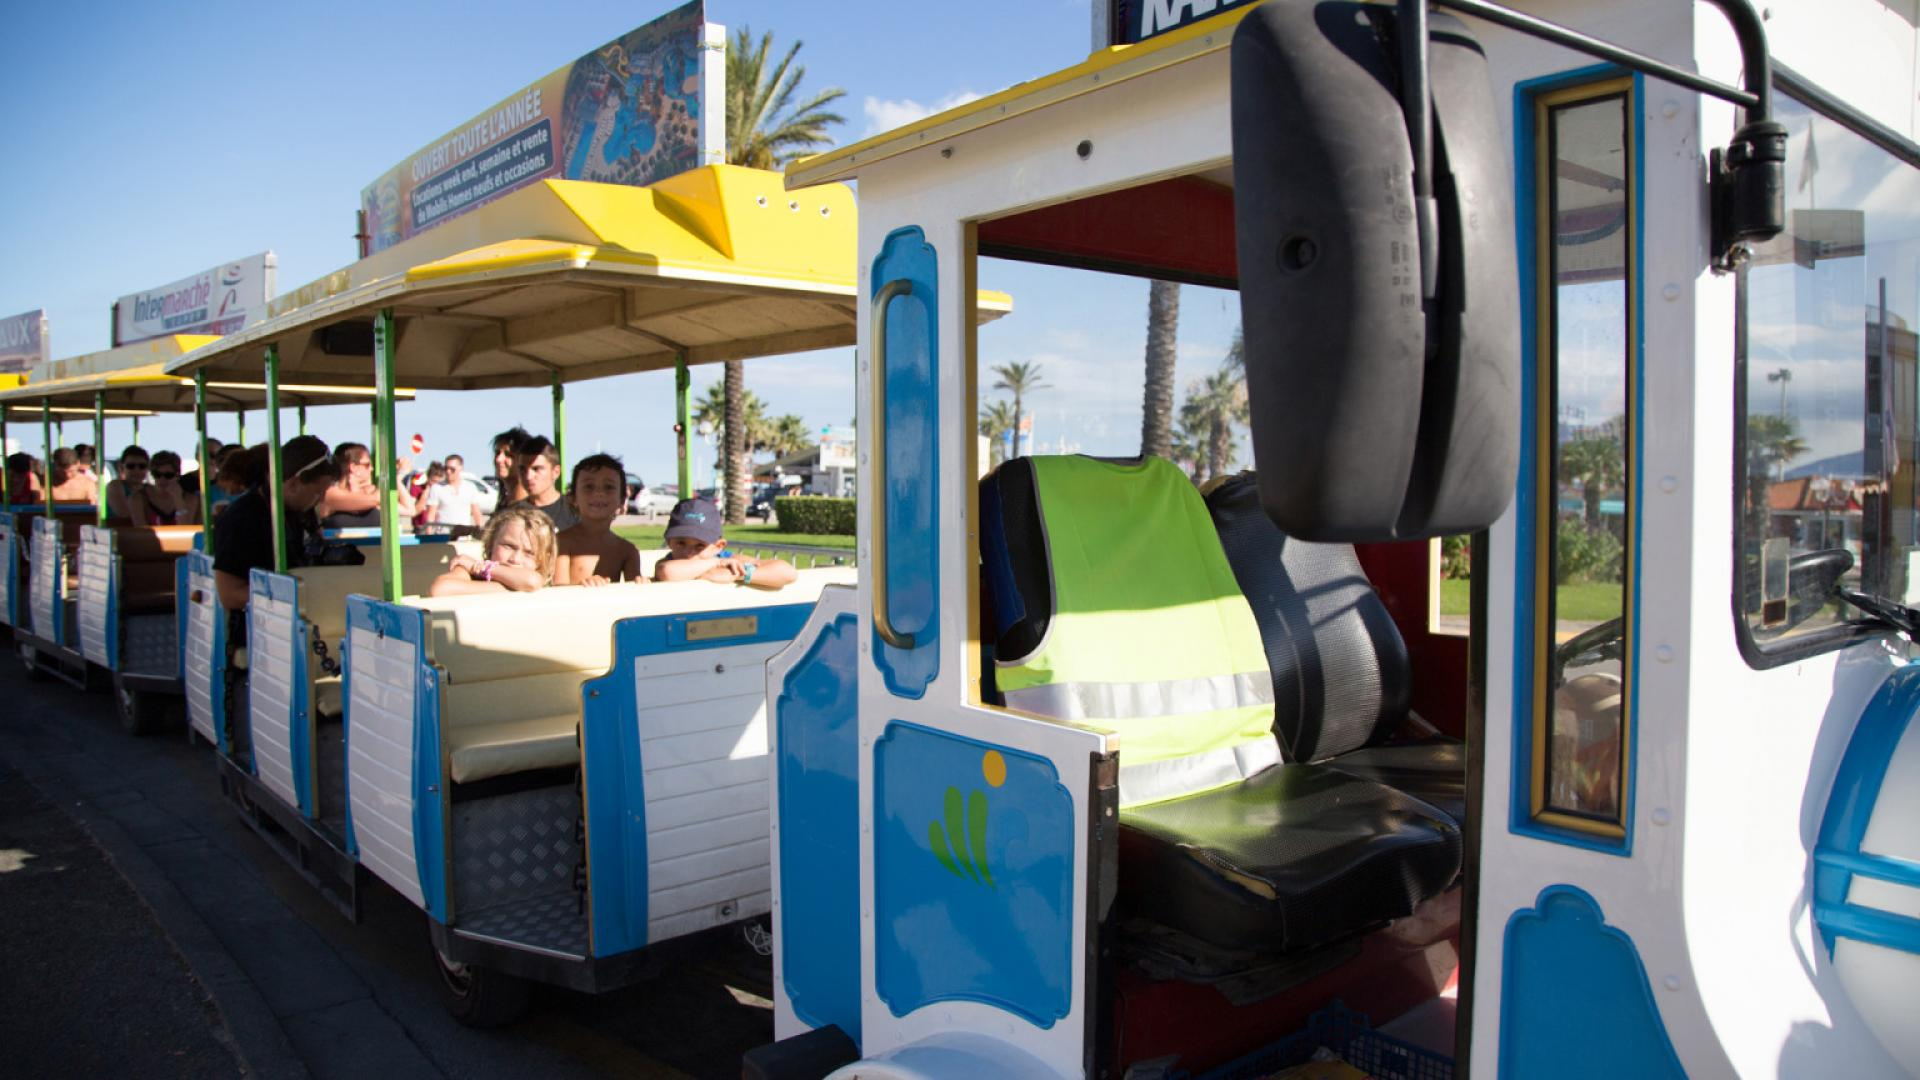 LE PETIT TRAIN DE SAINT CYPRIEN